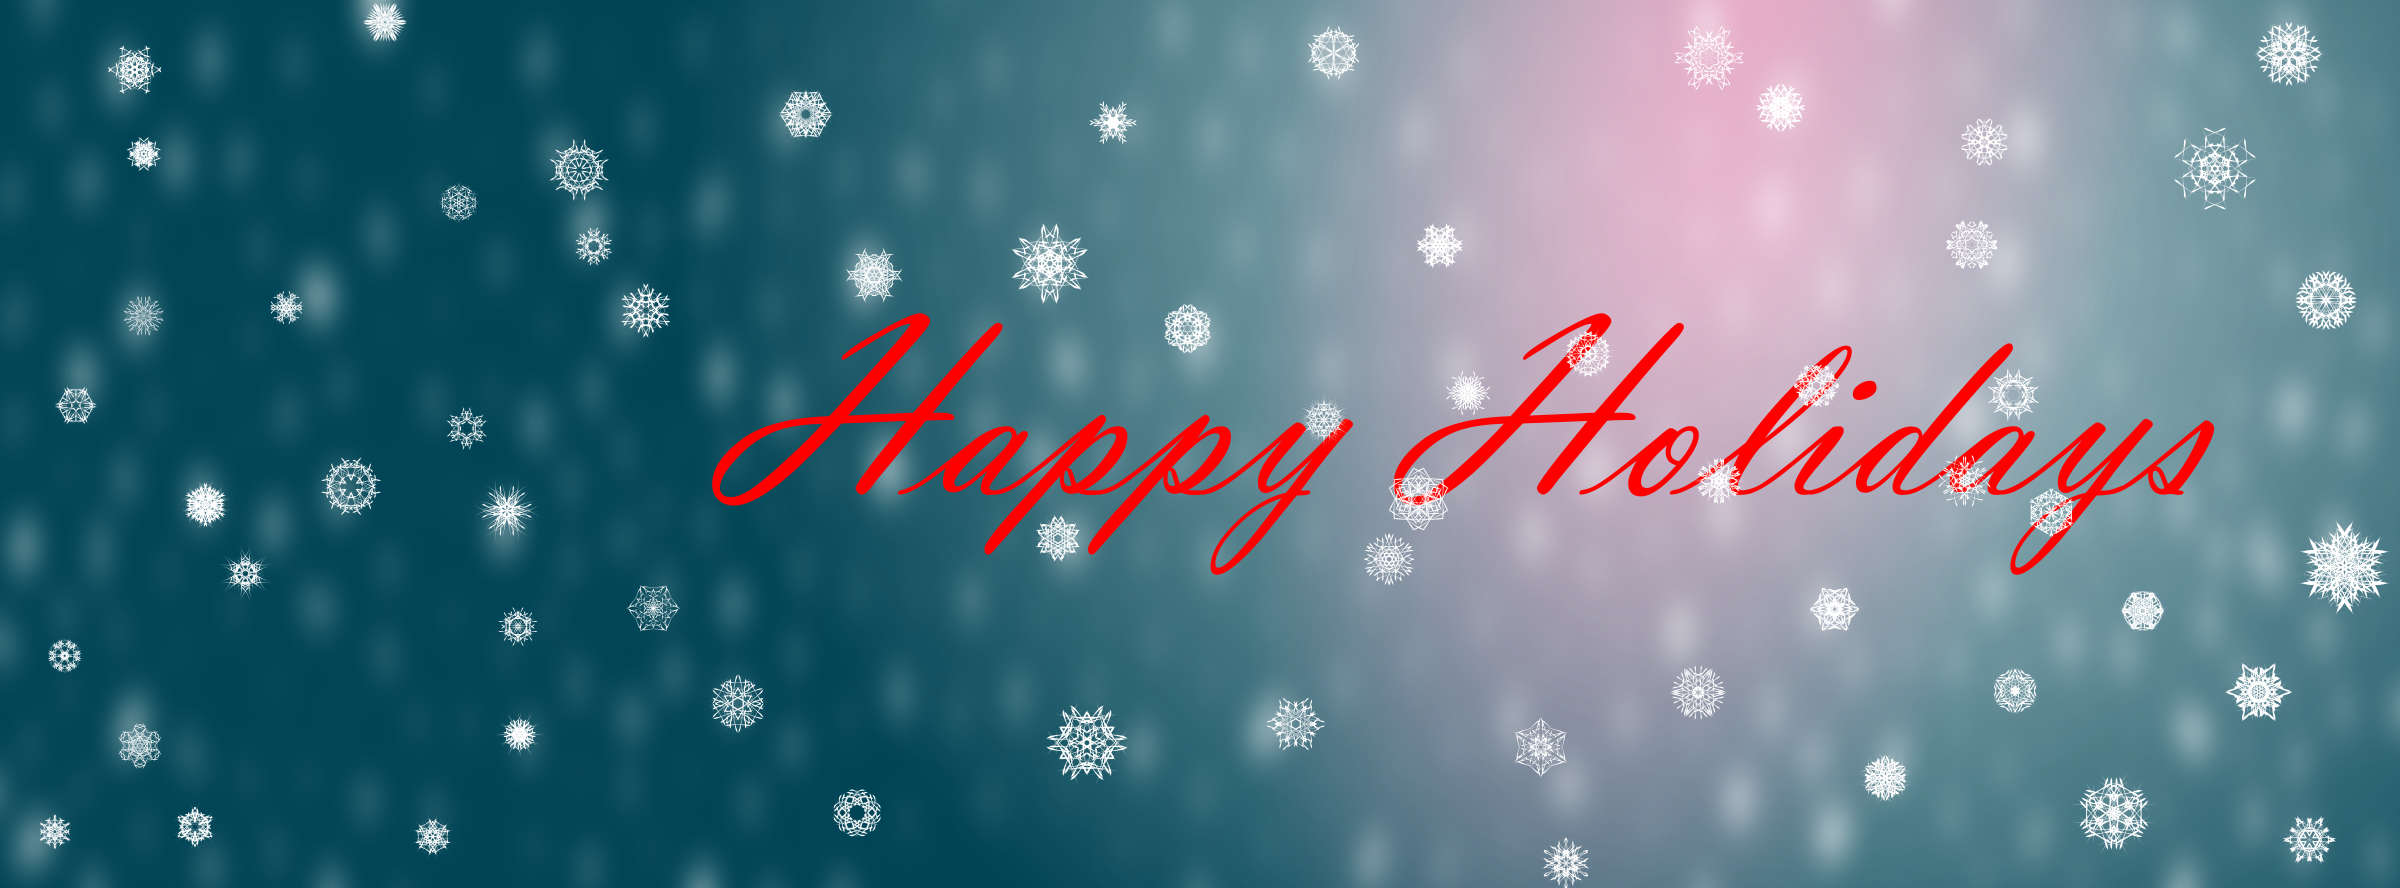 Happy Holidays Facebook Cover by Dustwin